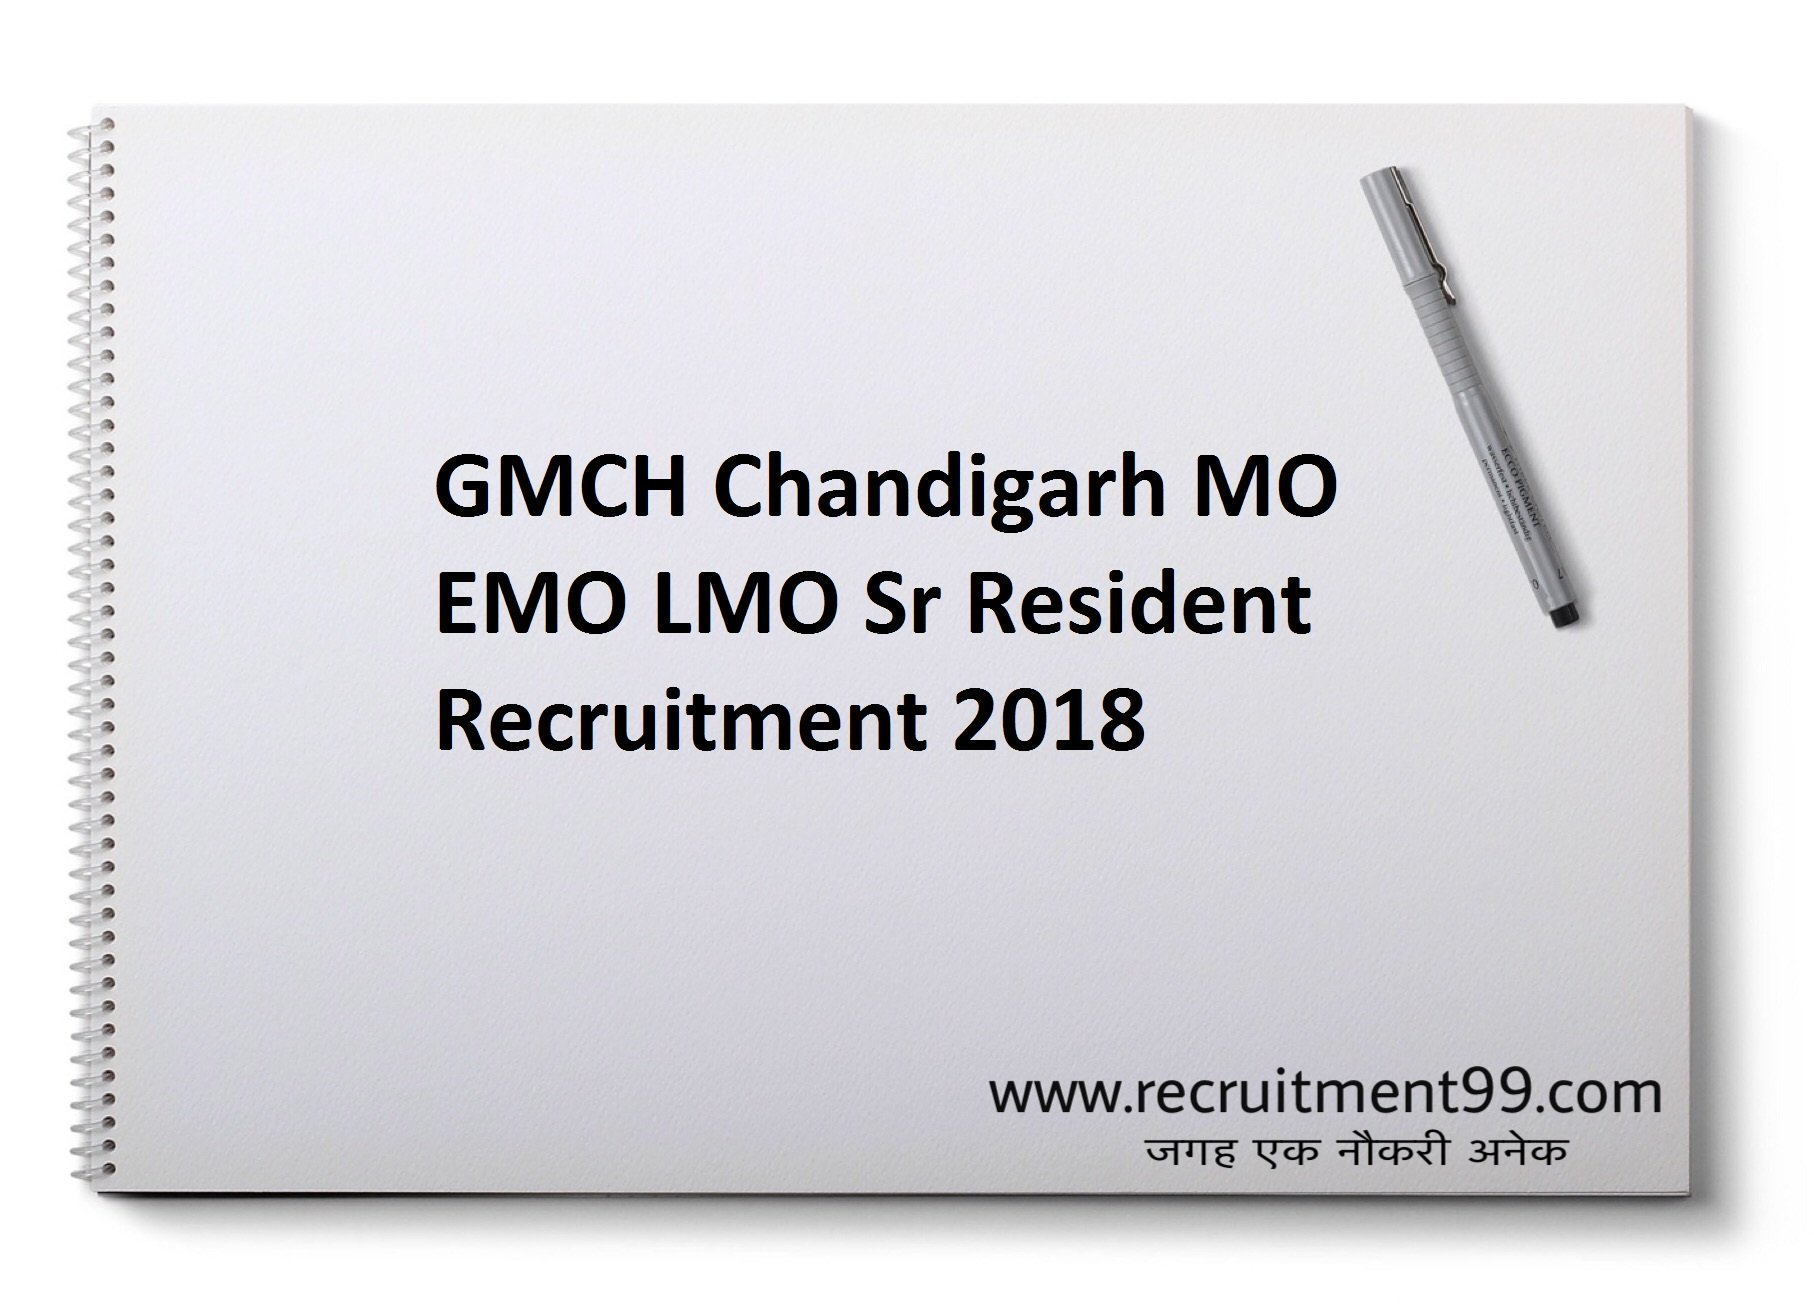 GMCH Chandigarh MO EMO LMO Sr Resident Recruitment Admit Card Result 2018